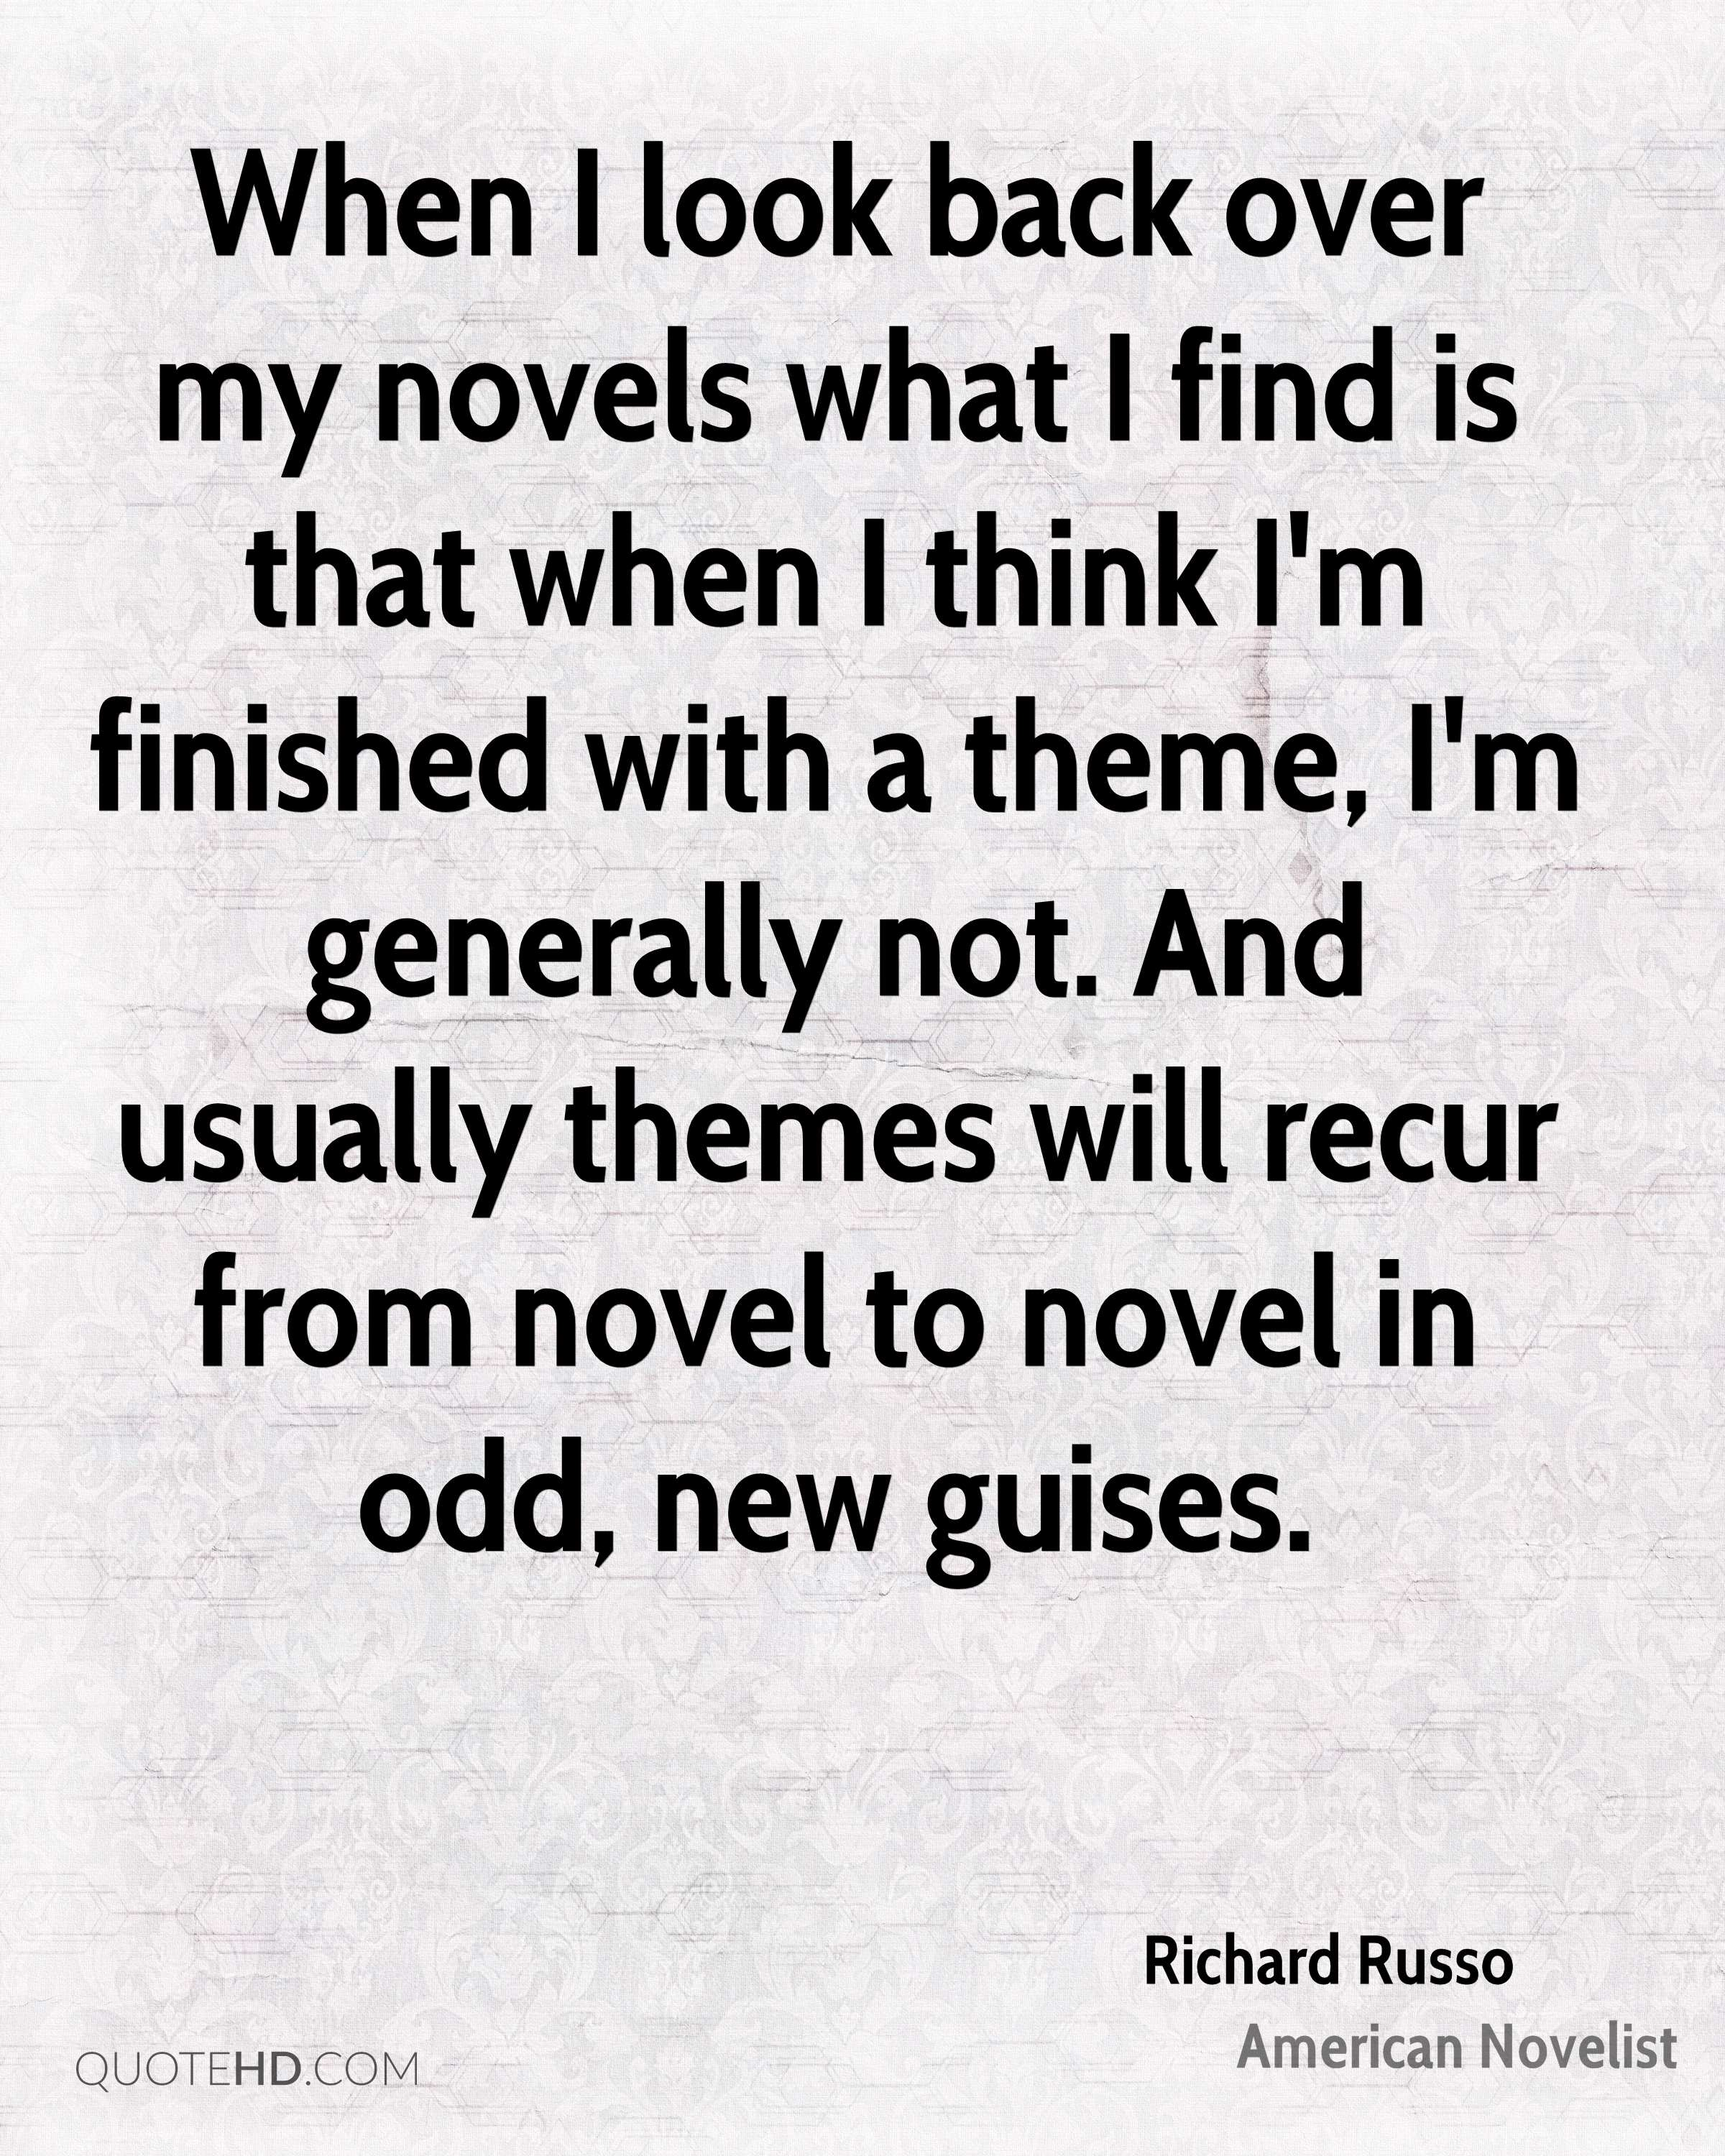 When I look back over my novels what I find is that when I think I'm finished with a theme, I'm generally not. And usually themes will recur from novel to novel in odd, new guises.